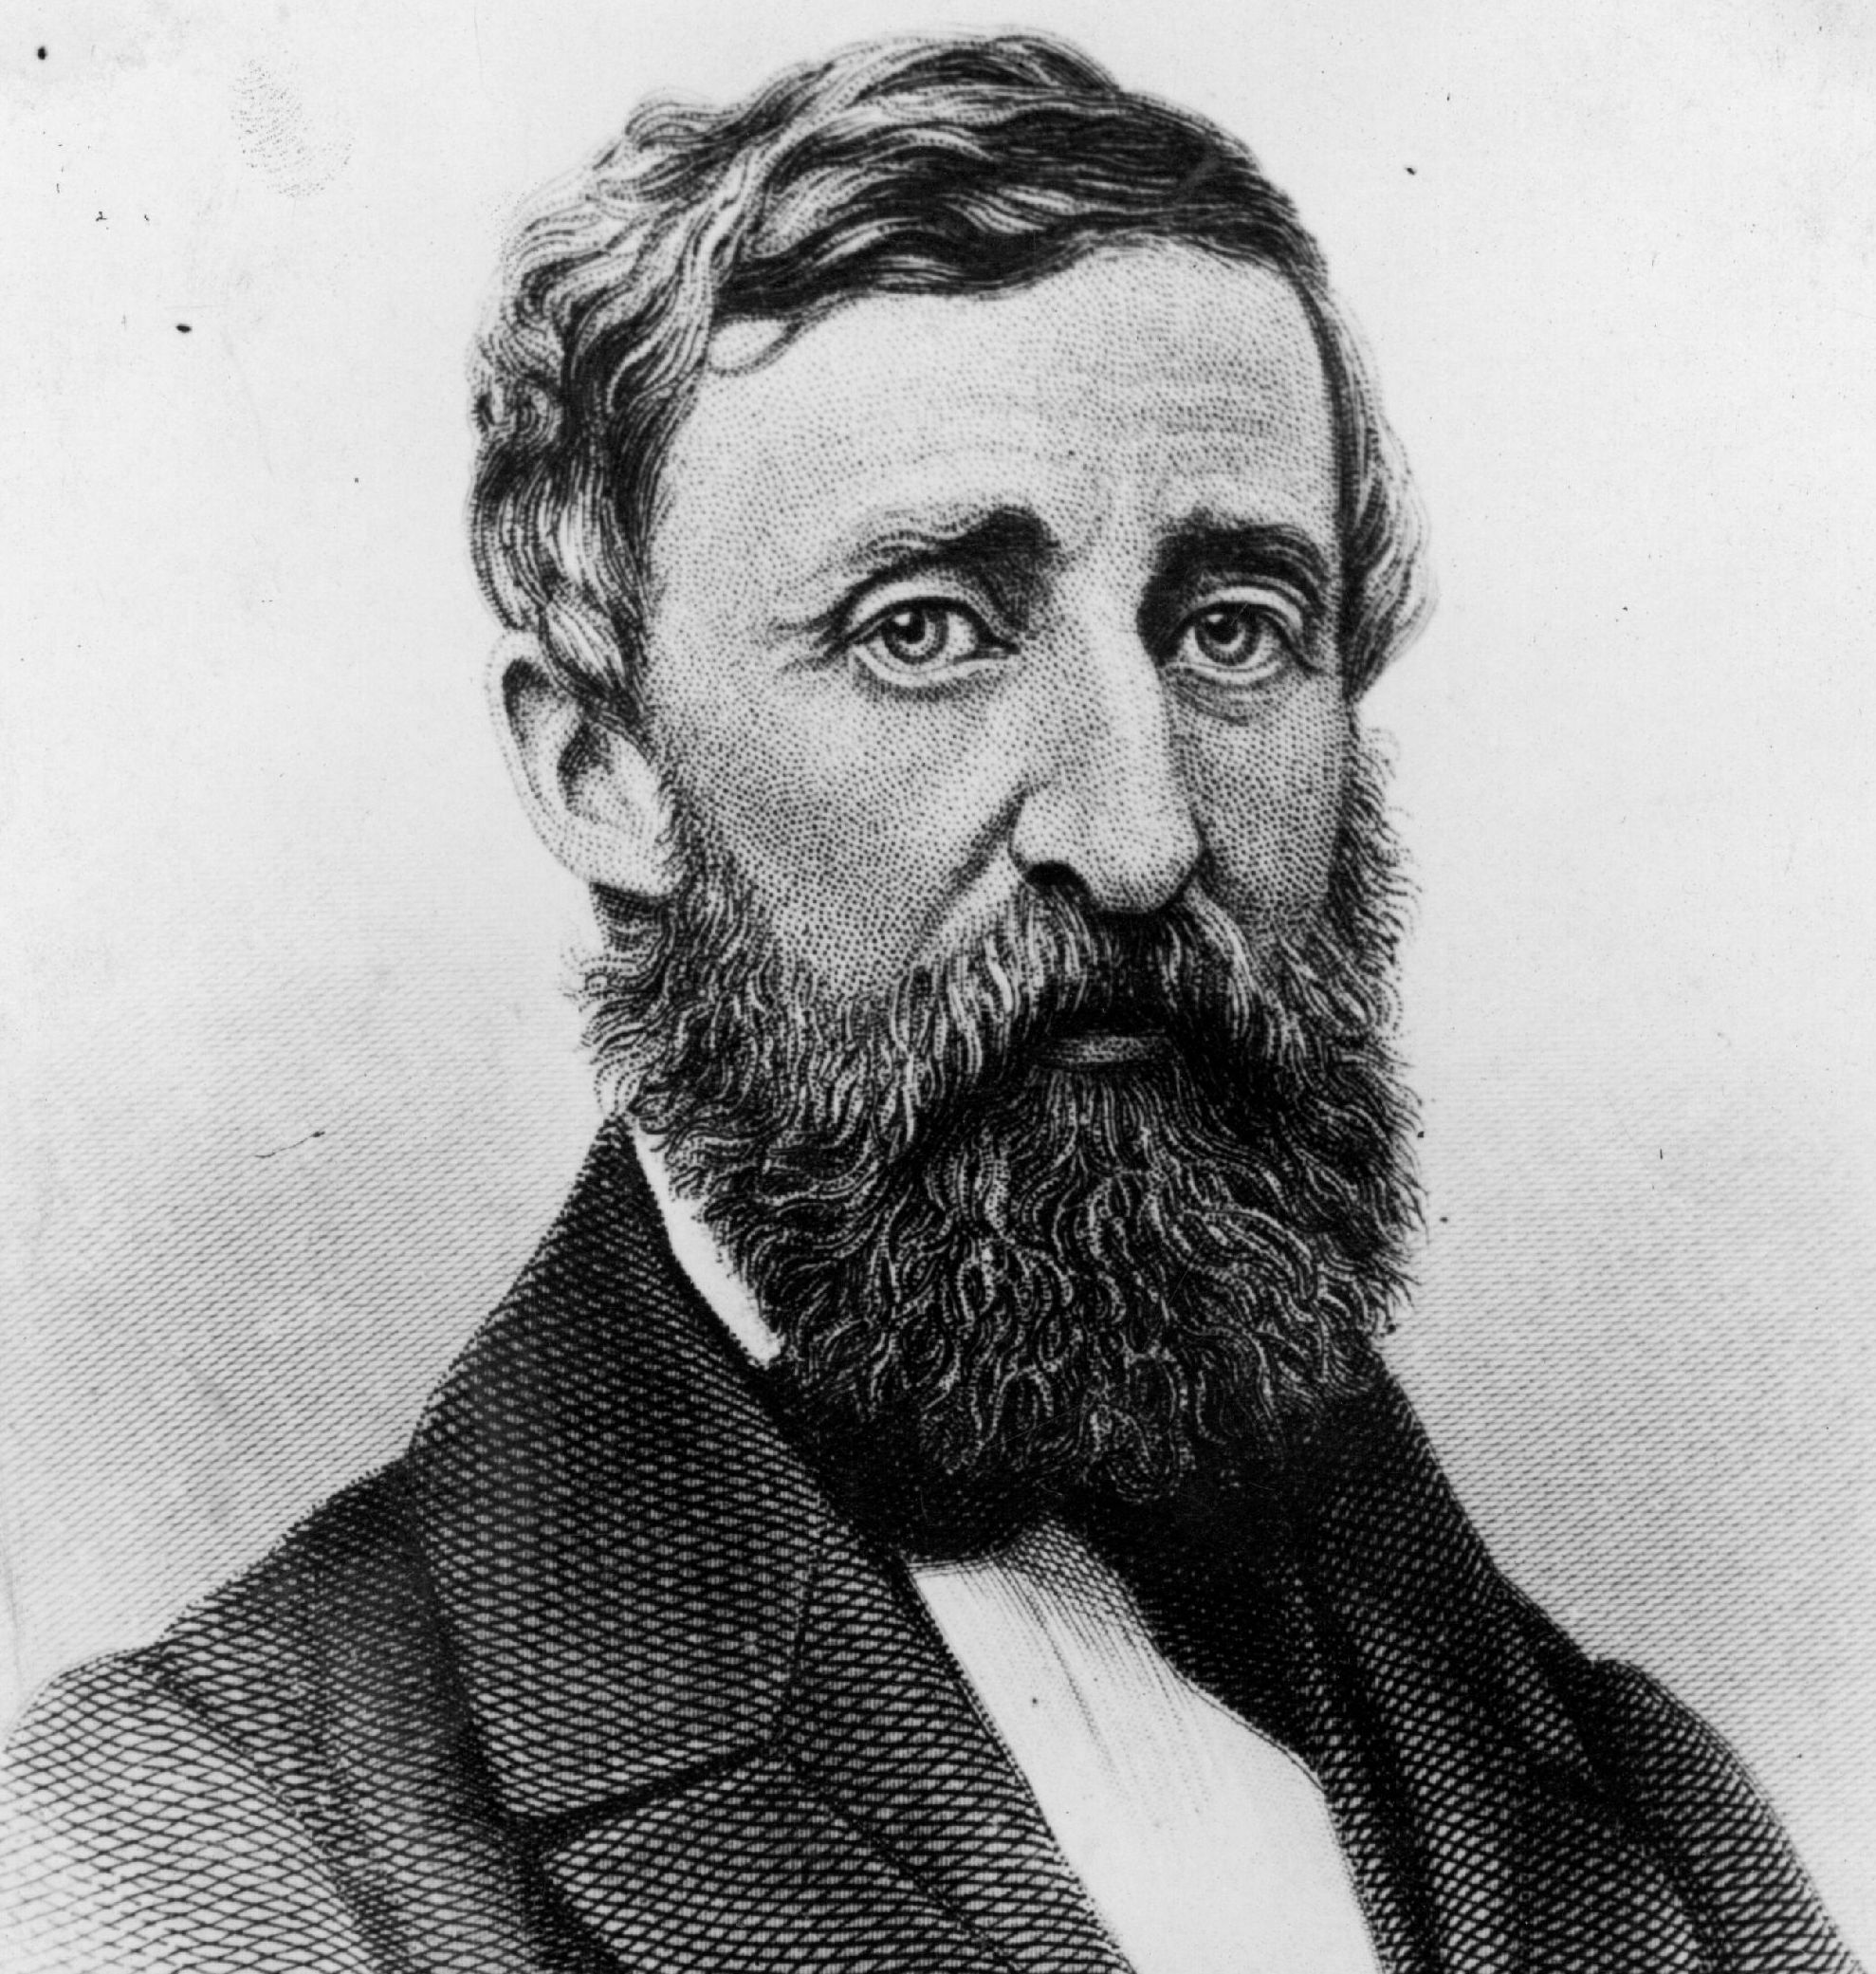 a biography of henry david thoreau an american transcendentalist writer Biography, civil disobedience, emerson - henry david thoreau: transcendentalist writer.